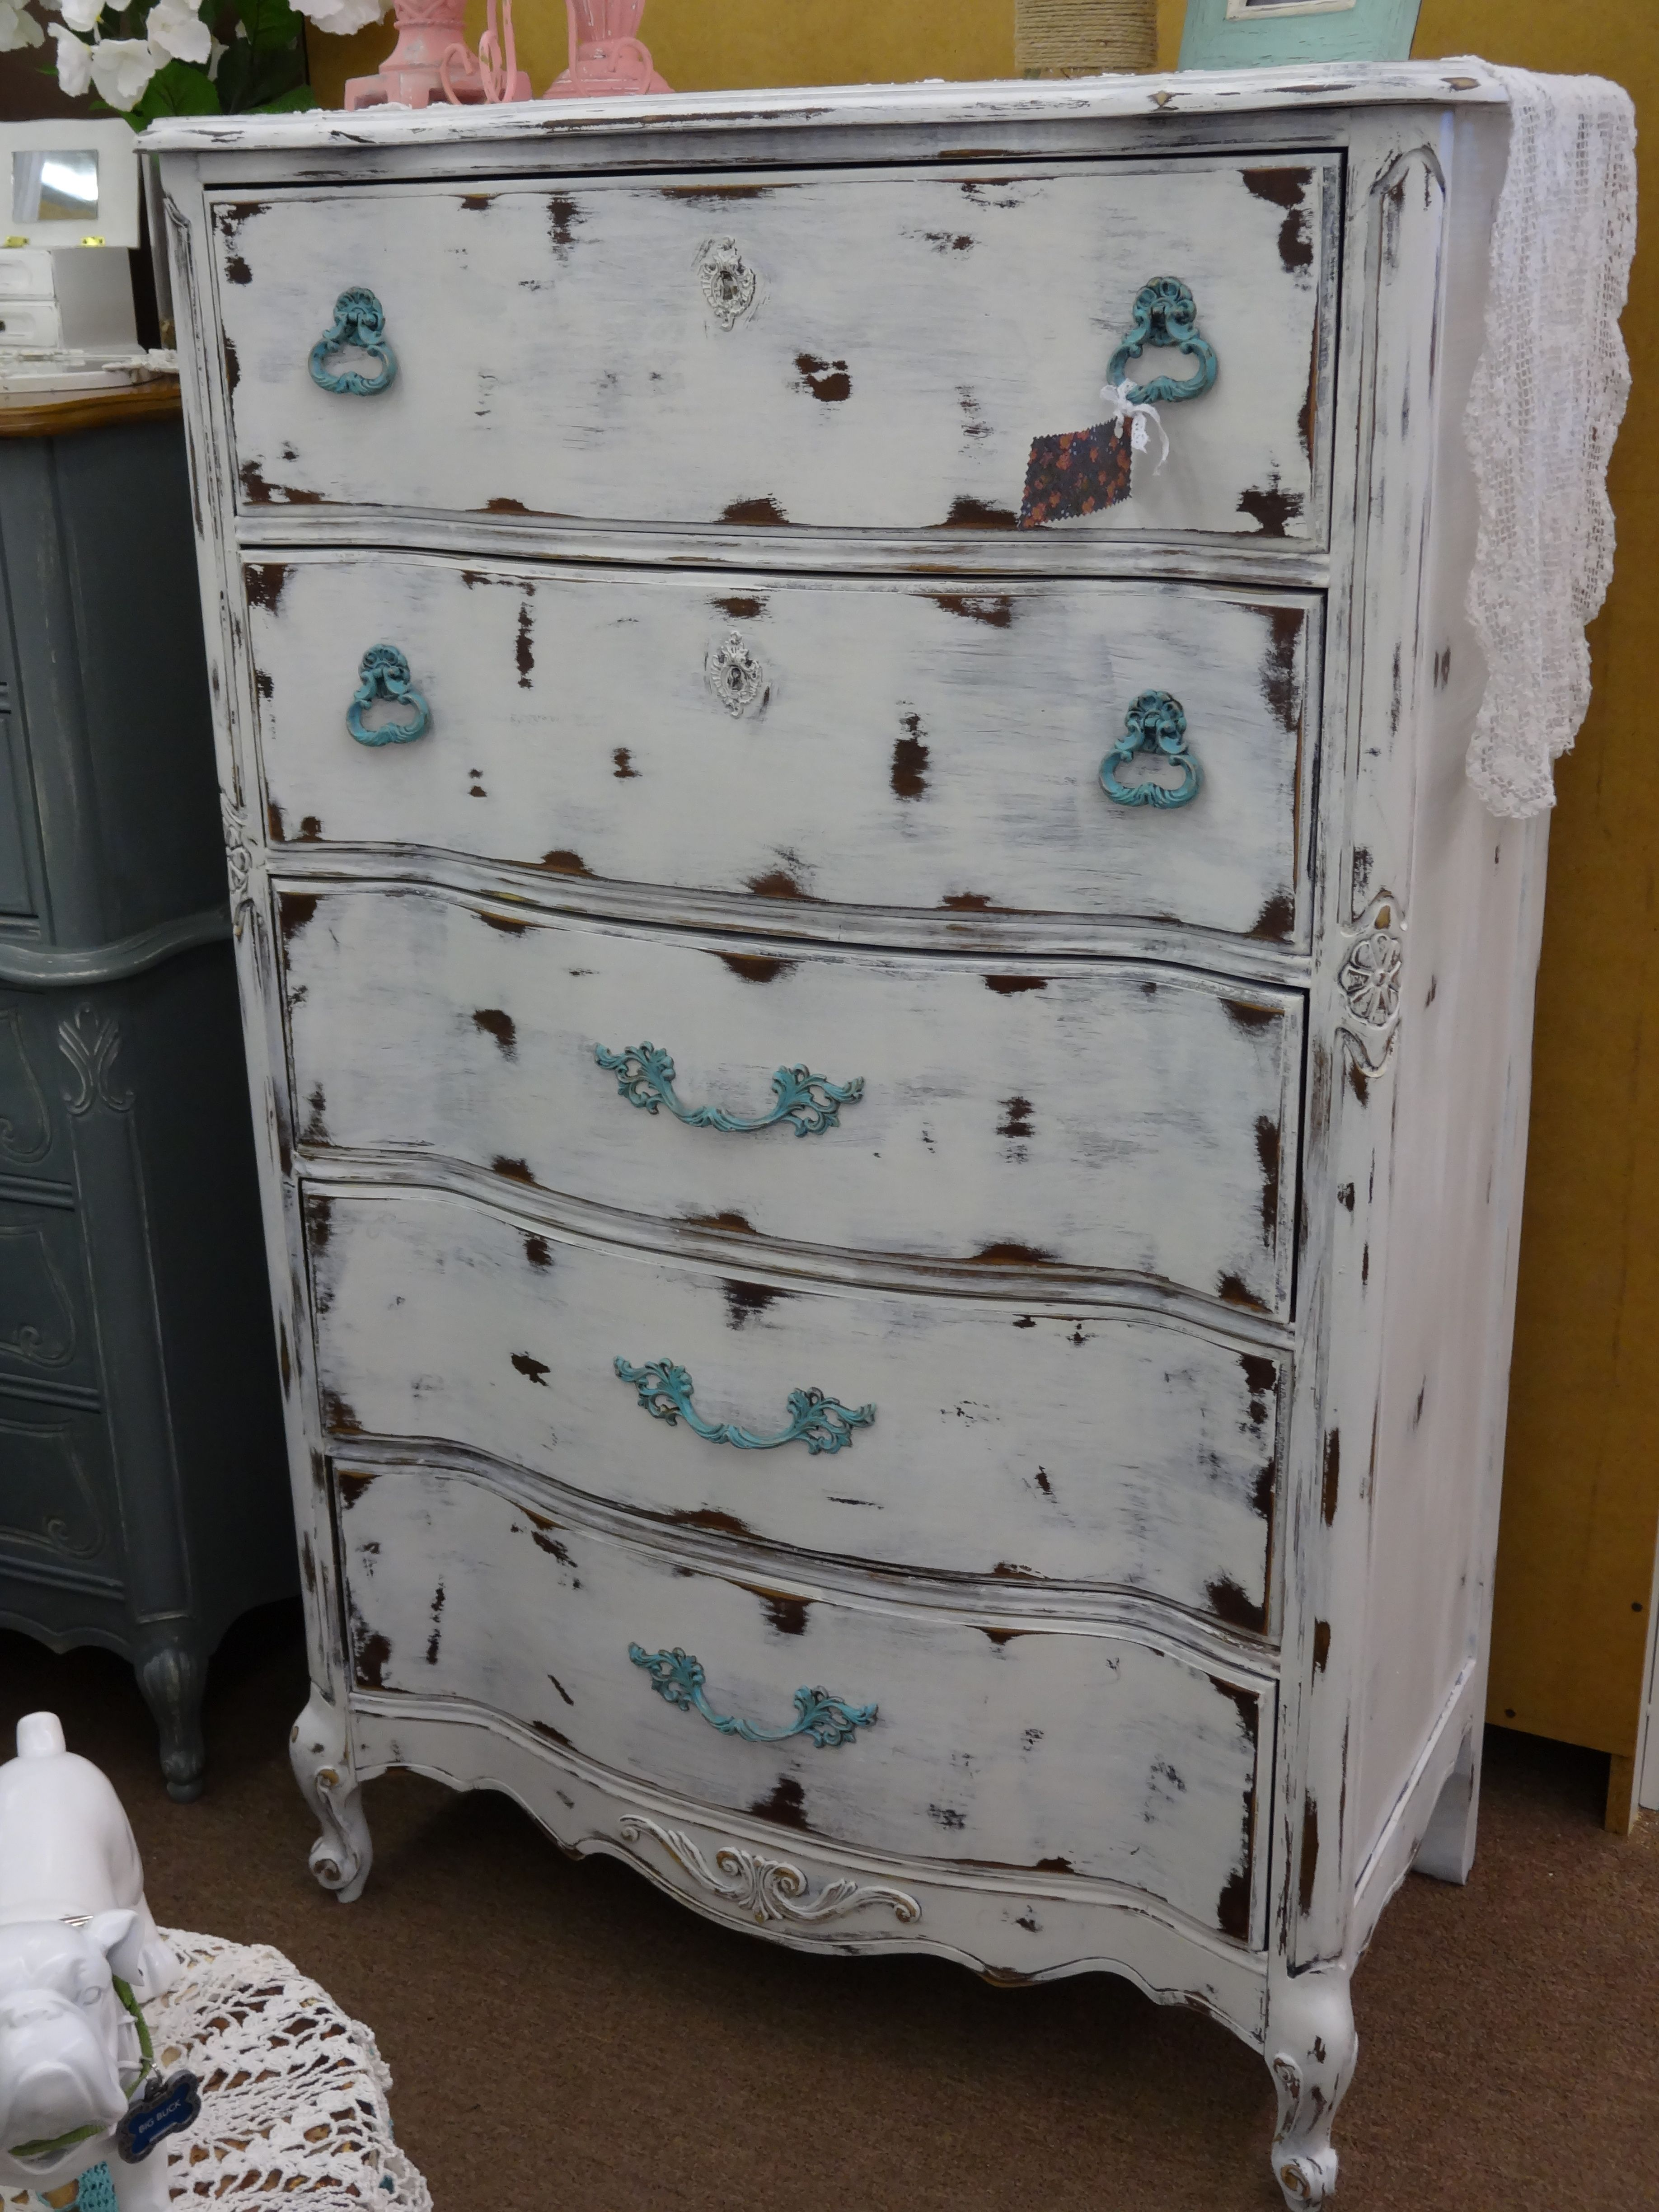 SOLD - Shabby Chic French Provincial Chest of Drawers ***** In Booth B10 at Main Street Antique Mall 7260 E Main St (east of Power RD on MAIN STREET) Mesa Az 85207 **** Open 7 days a week 10:00AM-5:30PM **** Call for more information 480 924 1122 **** We Accept cash, debit, VISA, MasterCard or Discover